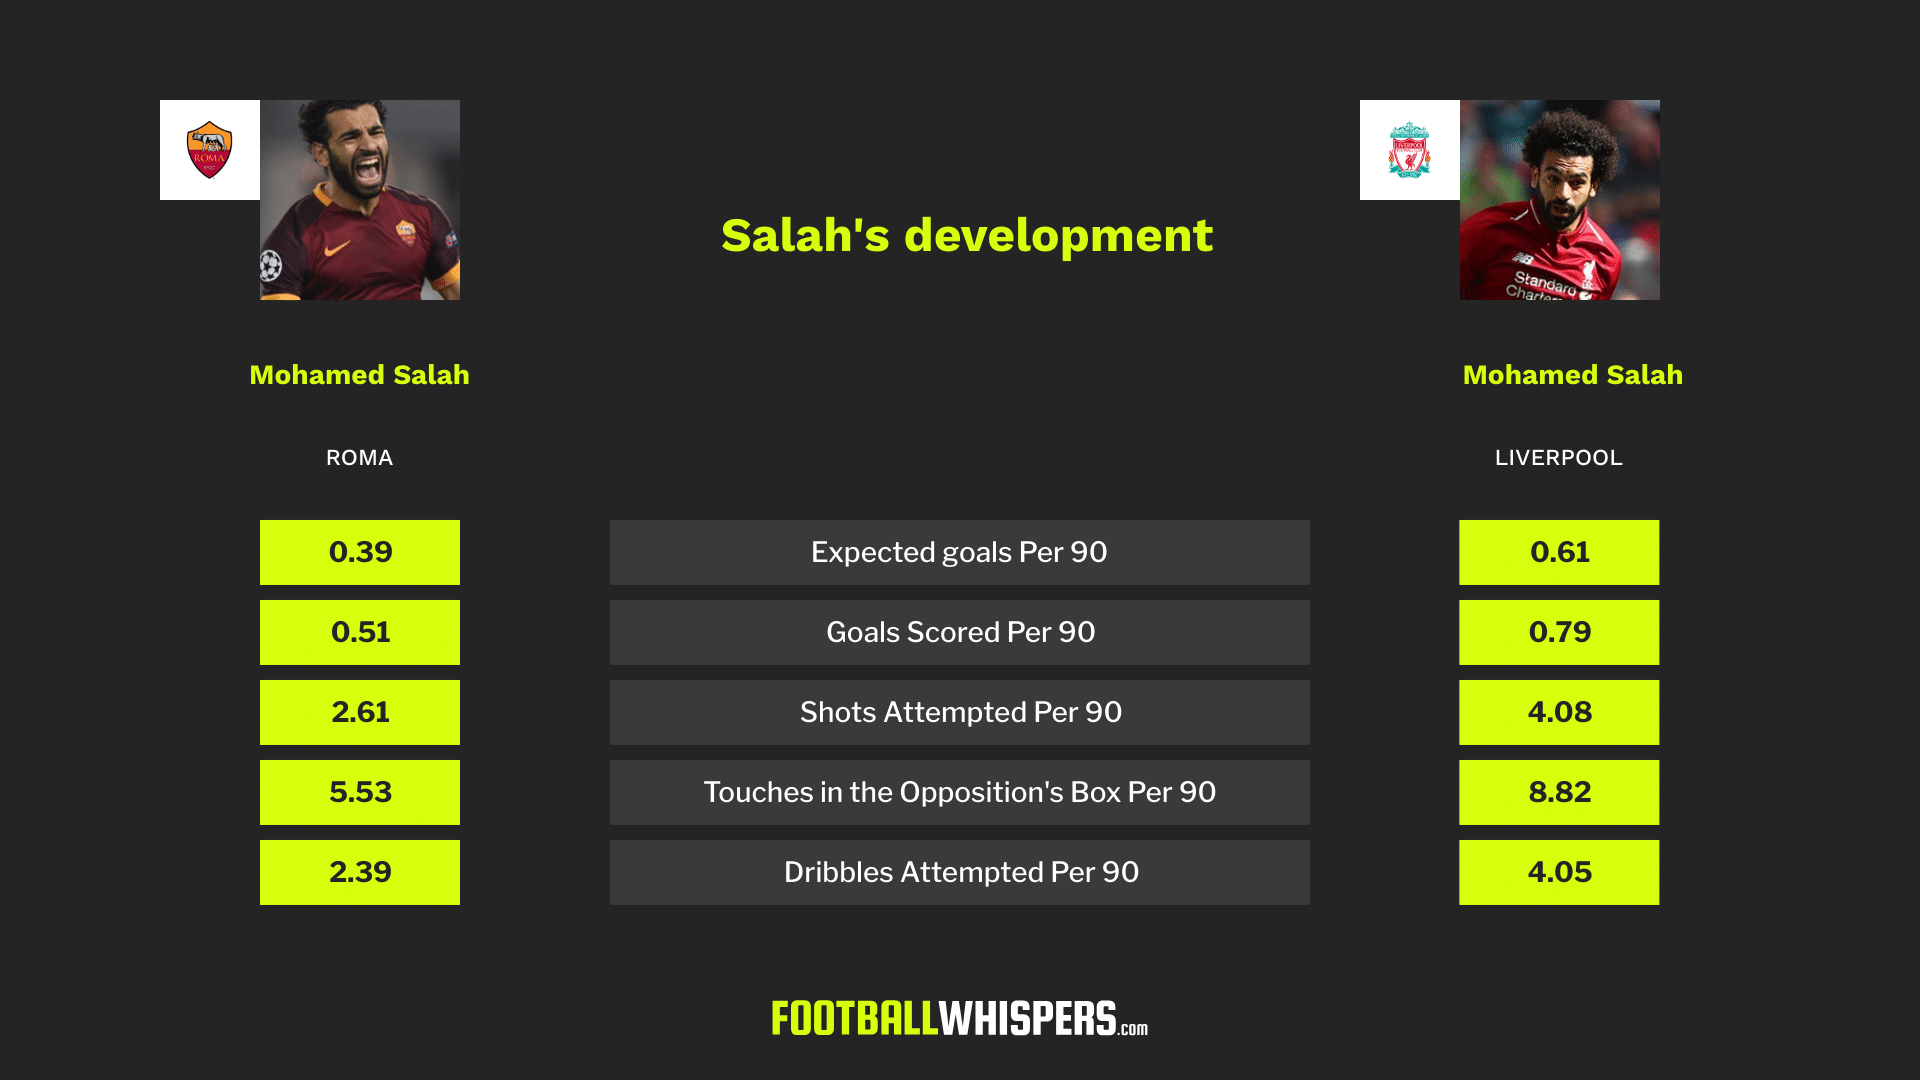 Seven ways for Liverpool to find the new Mohamed Salah